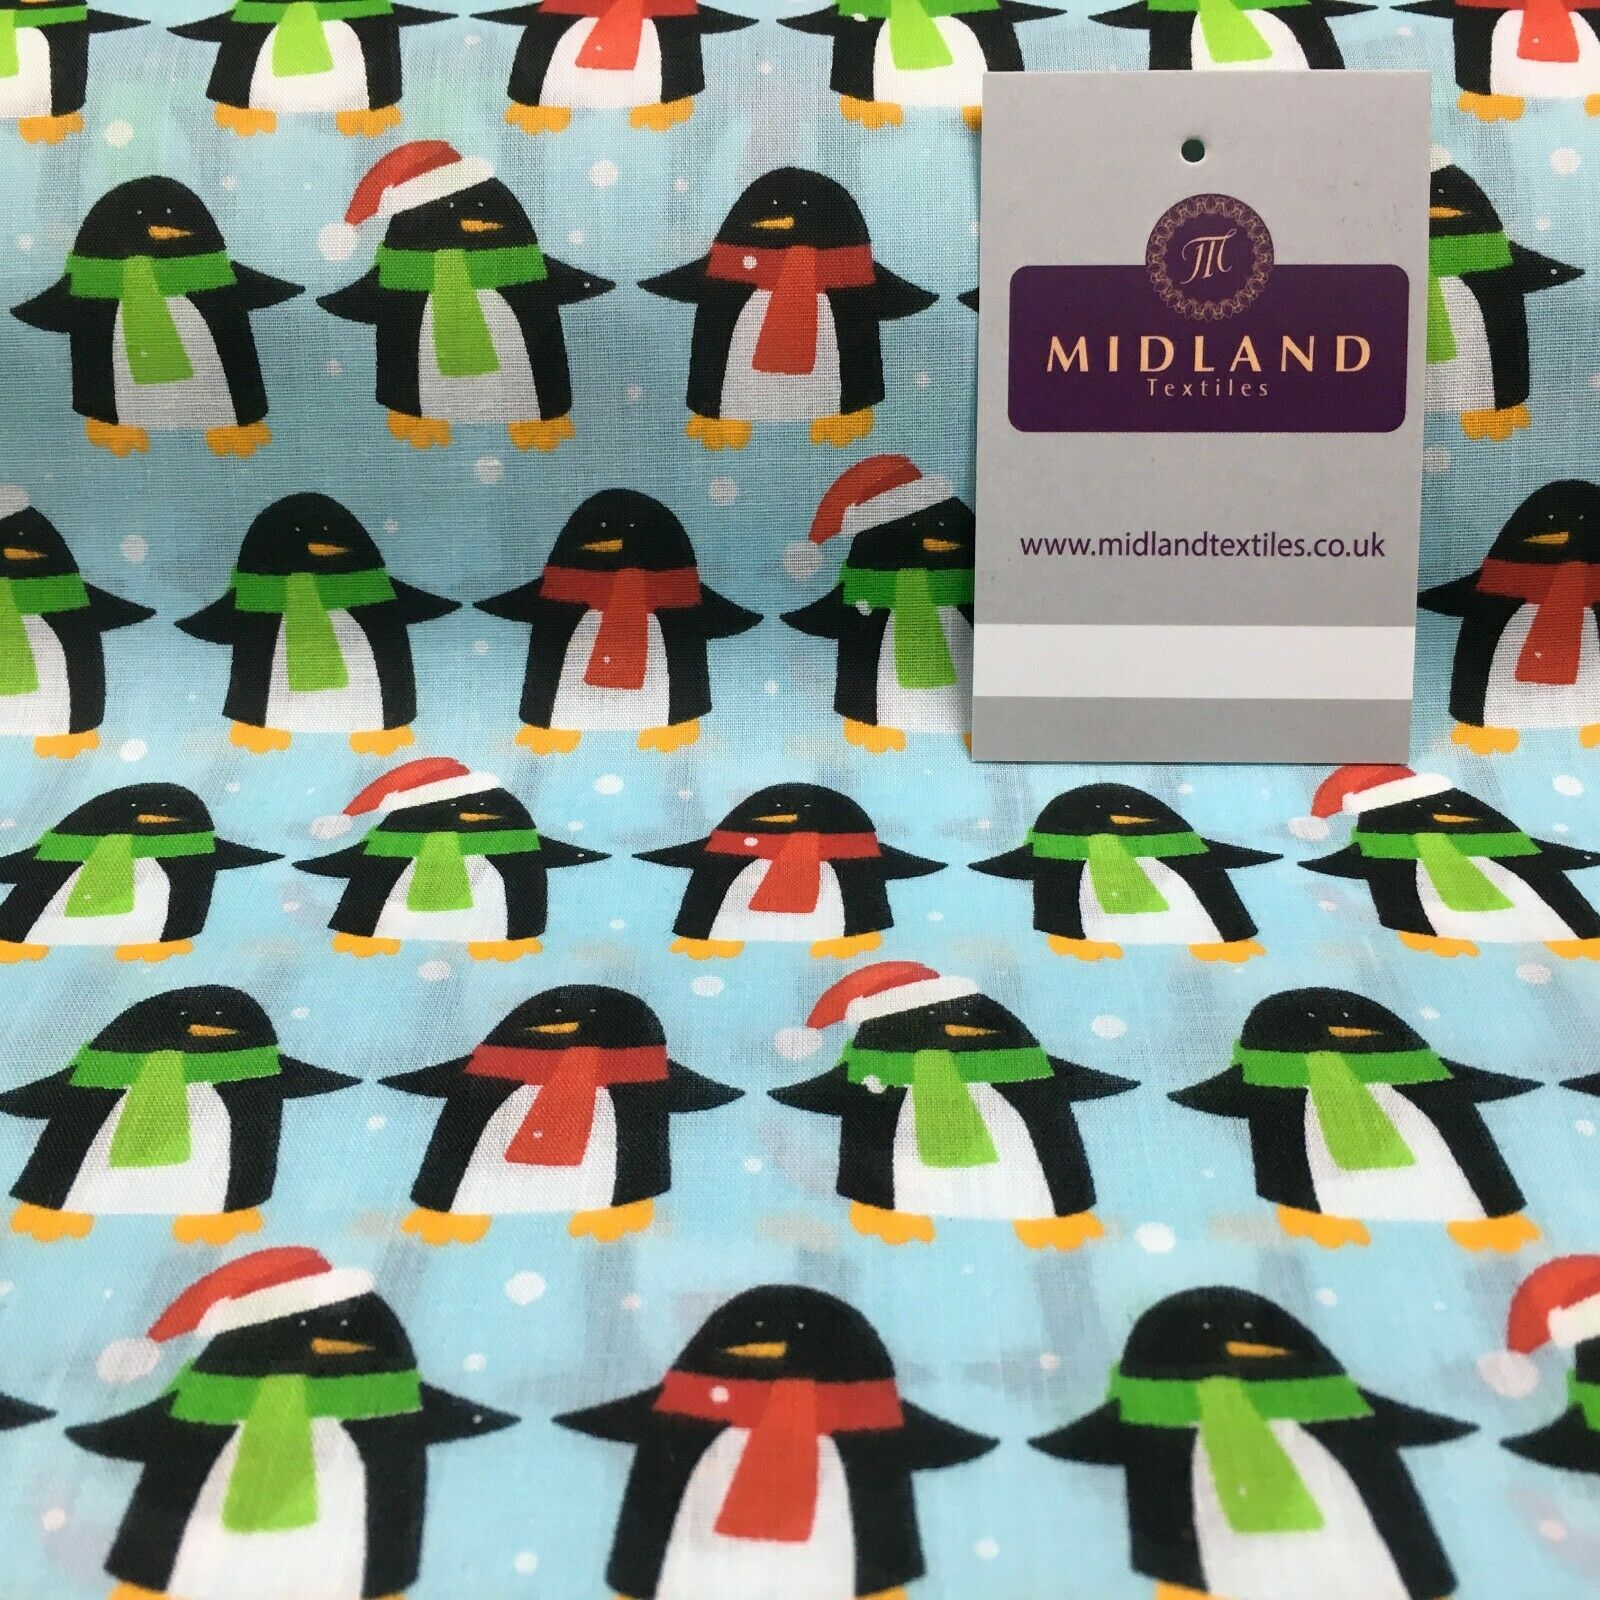 Christmas Penguin Xmas Printed cotton Fabric Craft Gifts 110 cm MD1289 Mtex